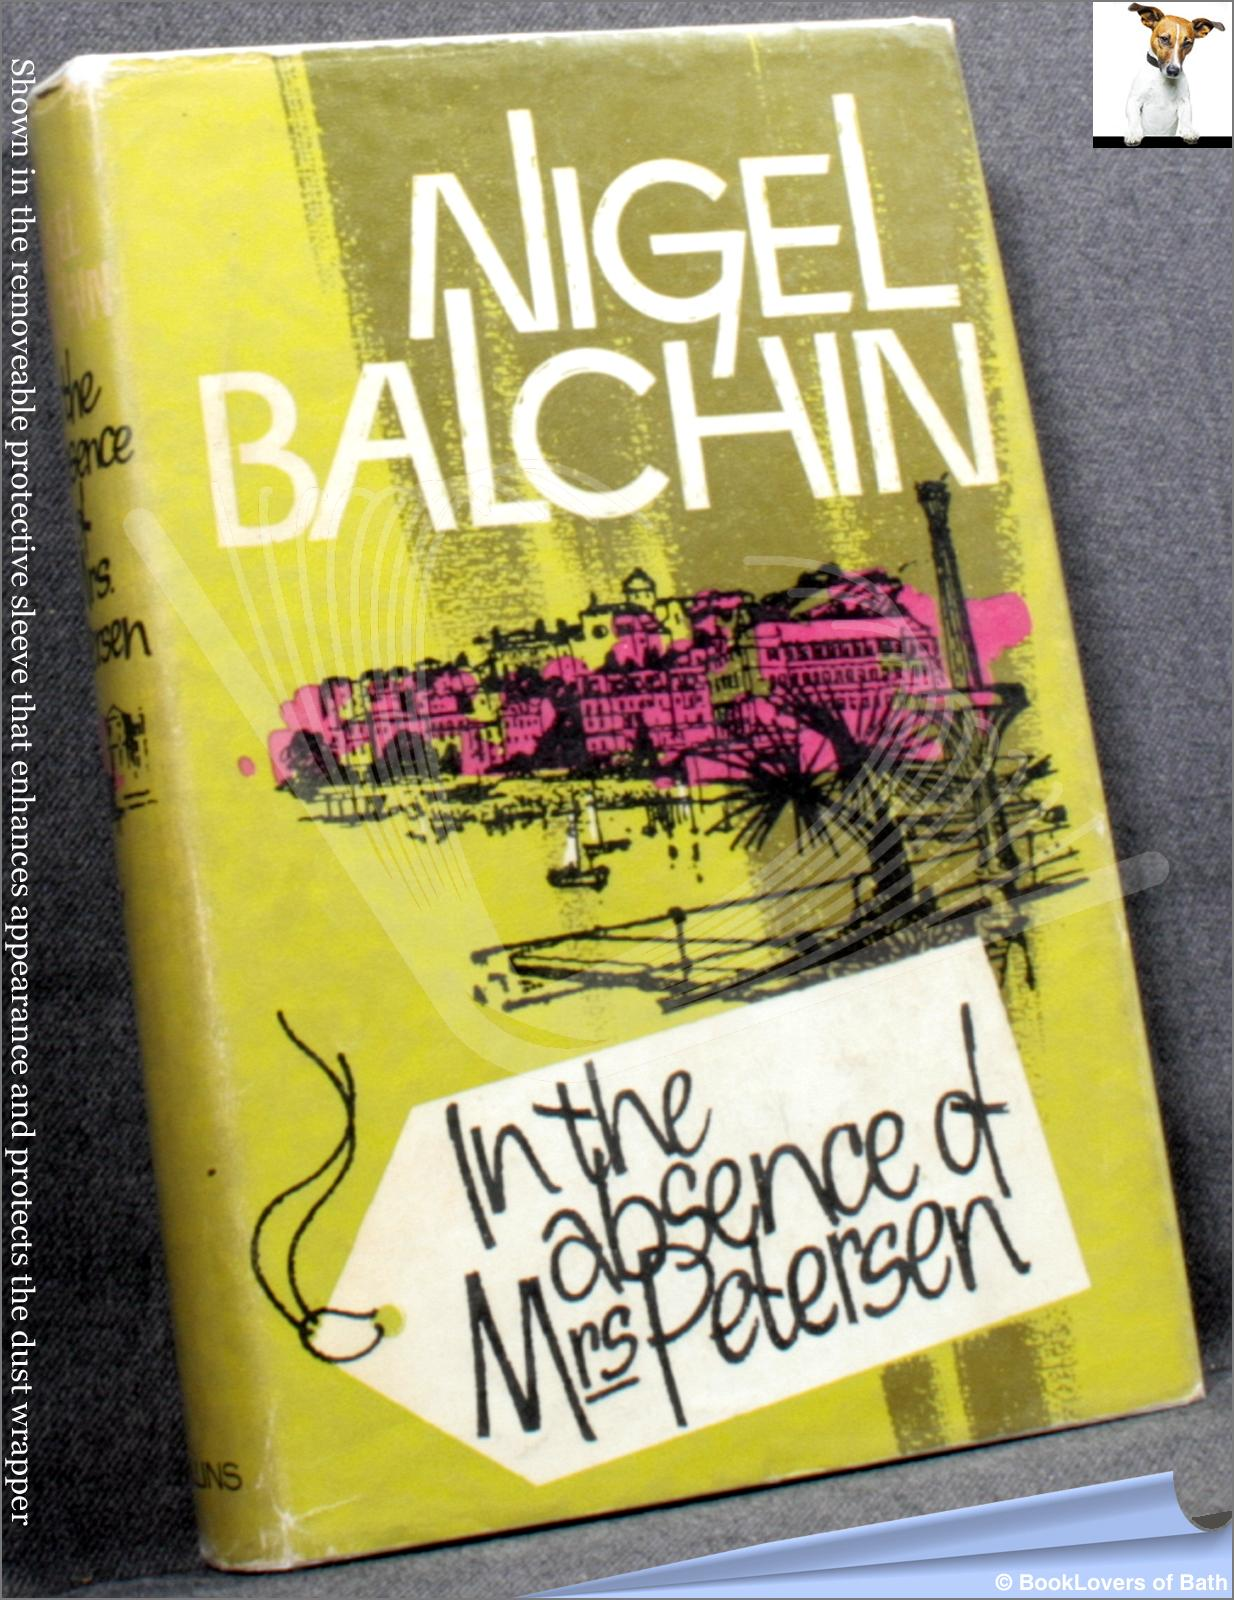 In The Absence of Mrs Petersen - Nigel Balchin